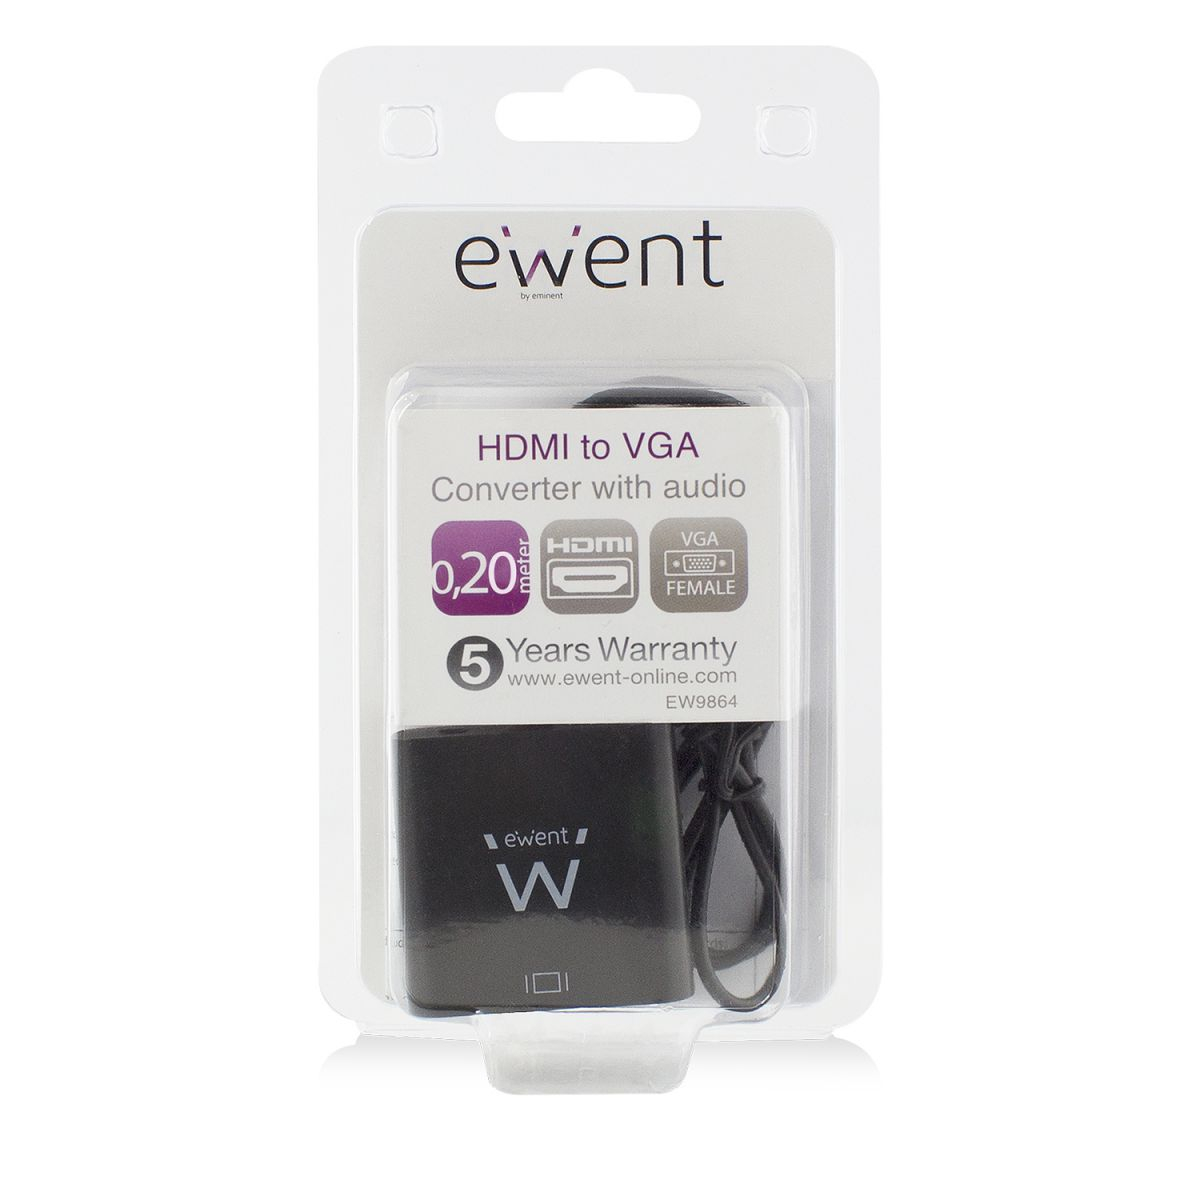 ewent ew9864 hdmi to vga converter with audio 1920x1200